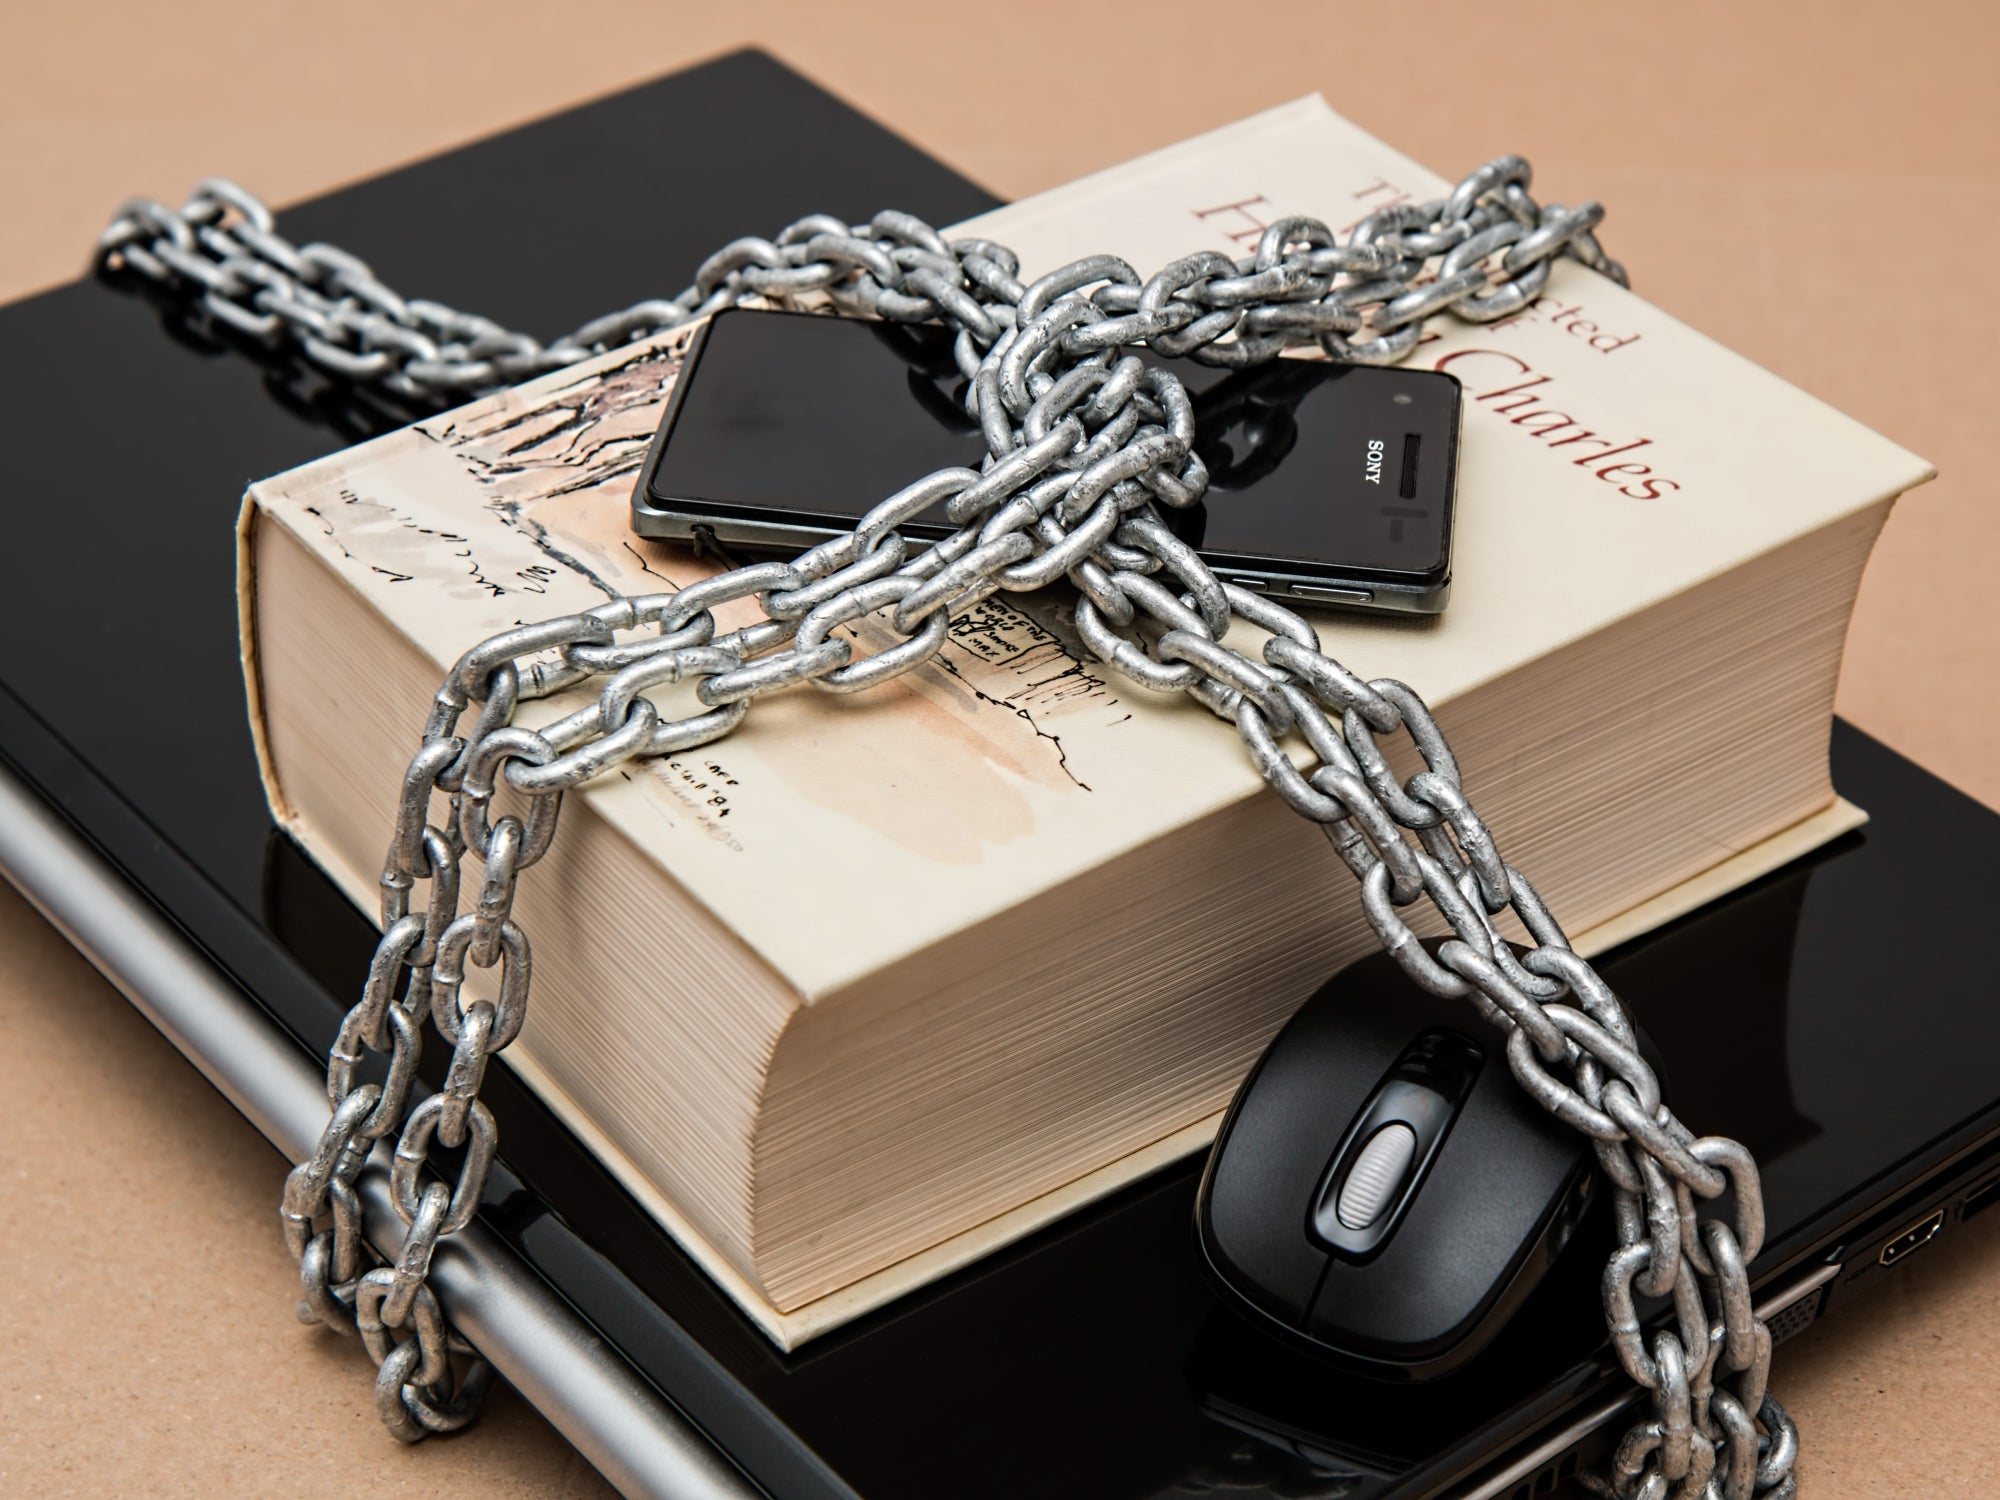 A closed laptop with a book, a mouse, and a phone on top of it, all chained together.